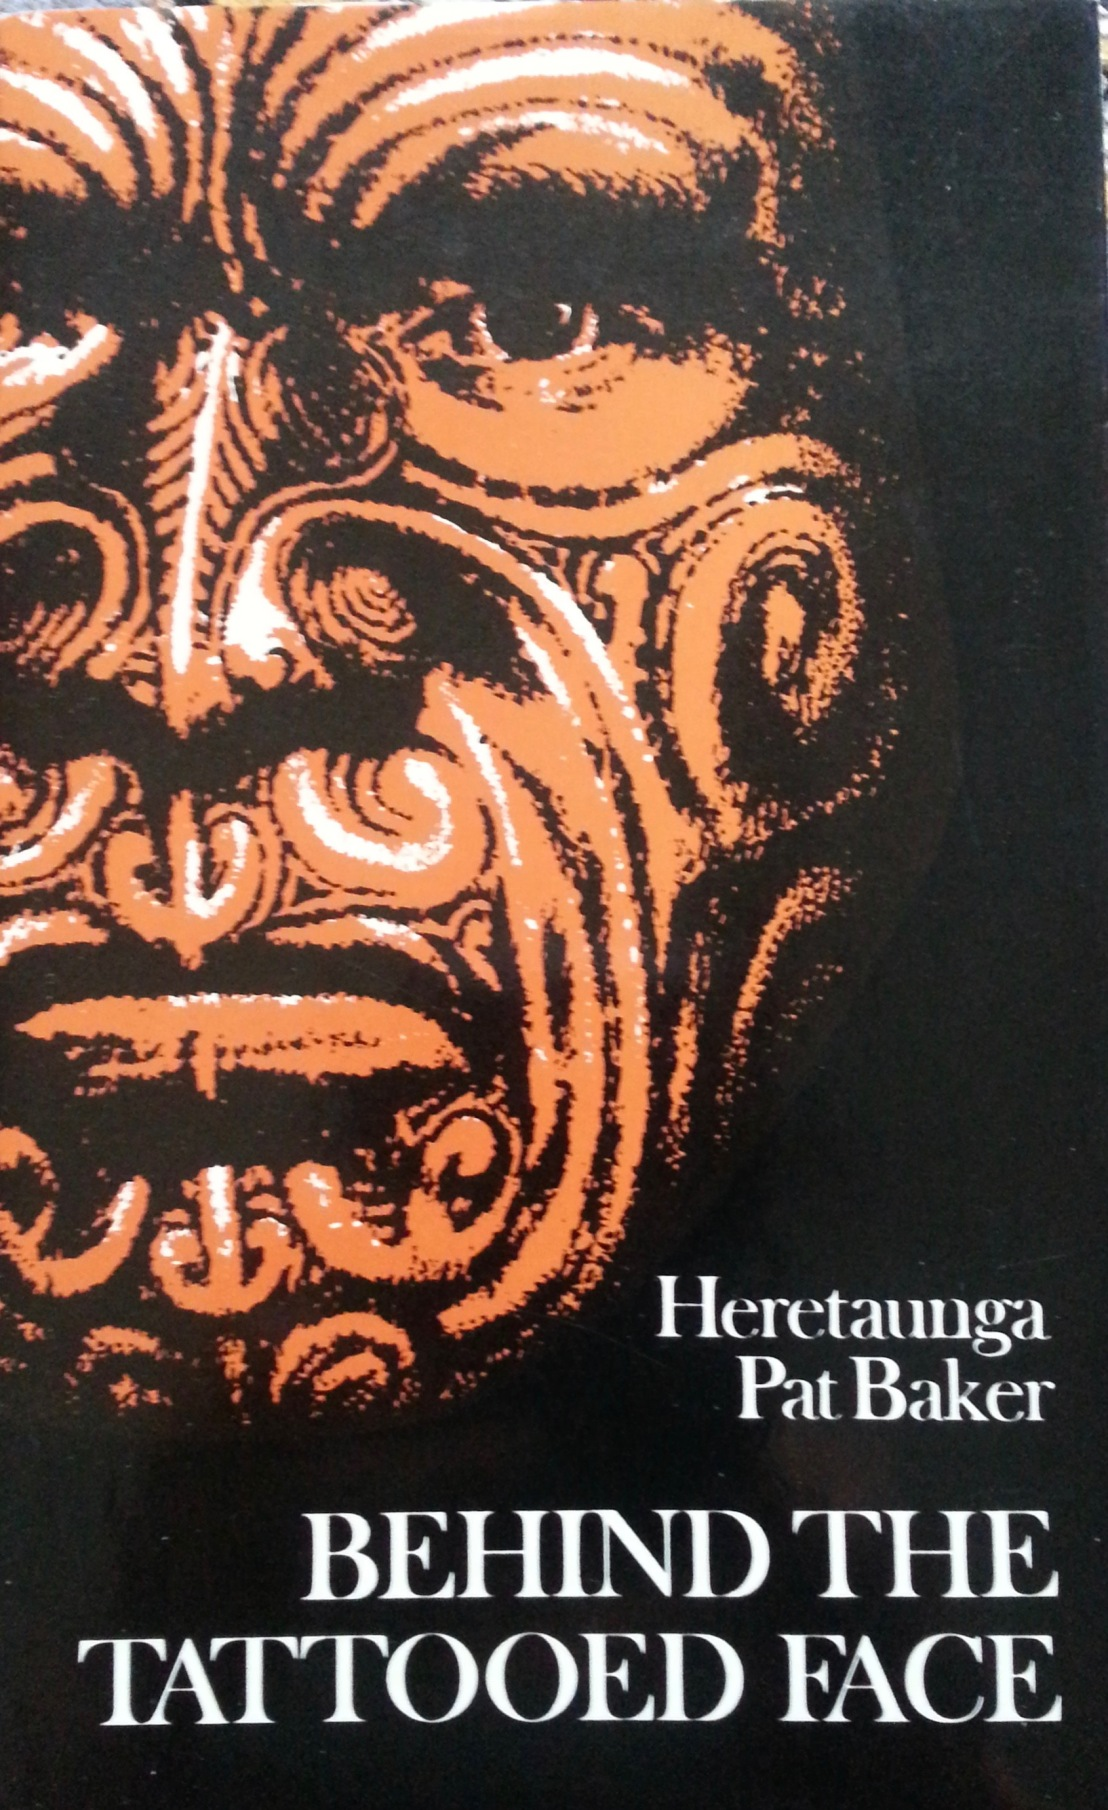 Heretaunga Pat Baker's — Behind the tattooed face *****